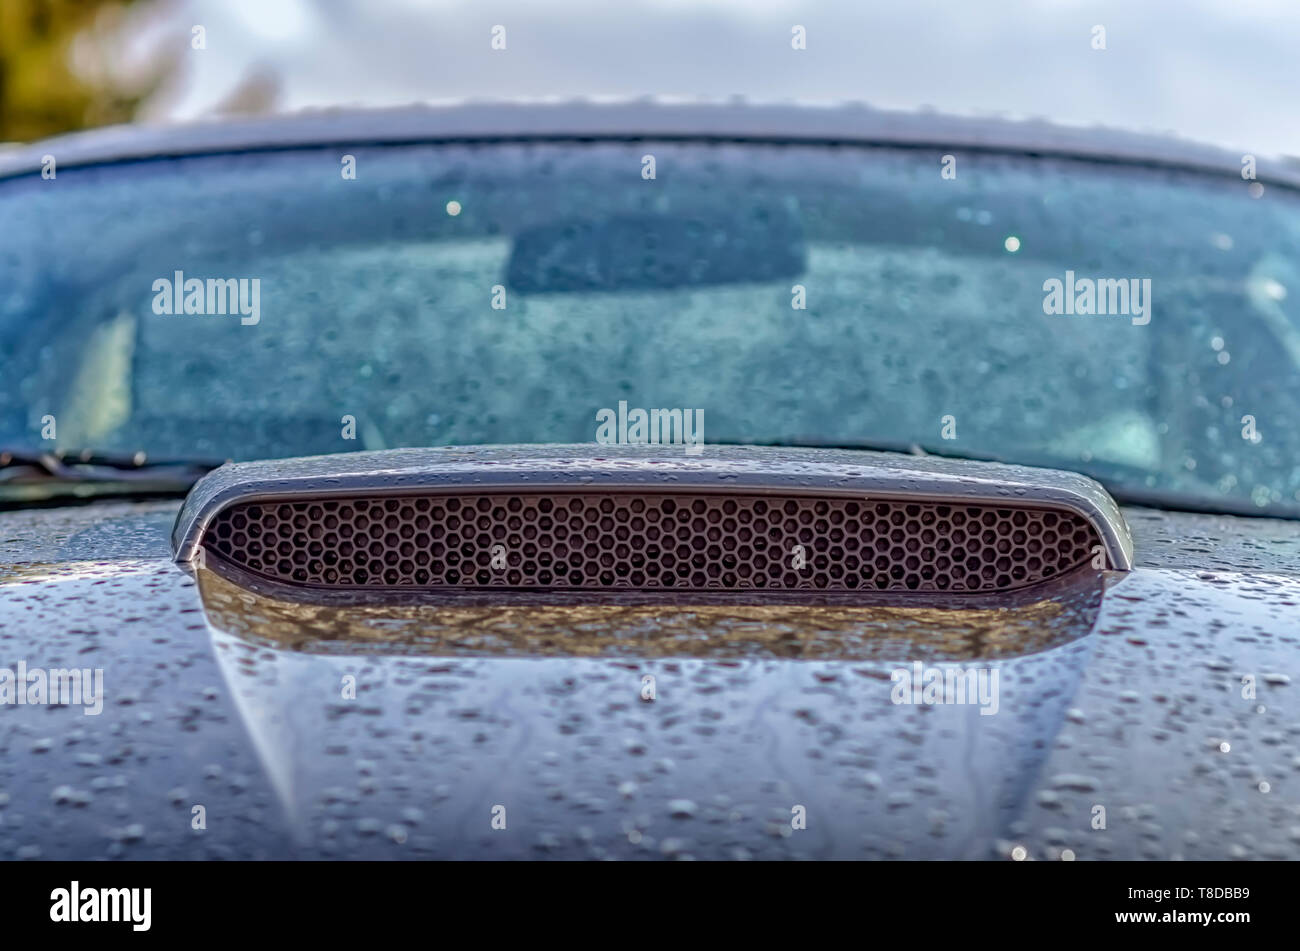 The hood/hood scoop/hood grille insert of a Ford Mustang GT covered in  glistening water droplets after a summer storm. - Stock Image